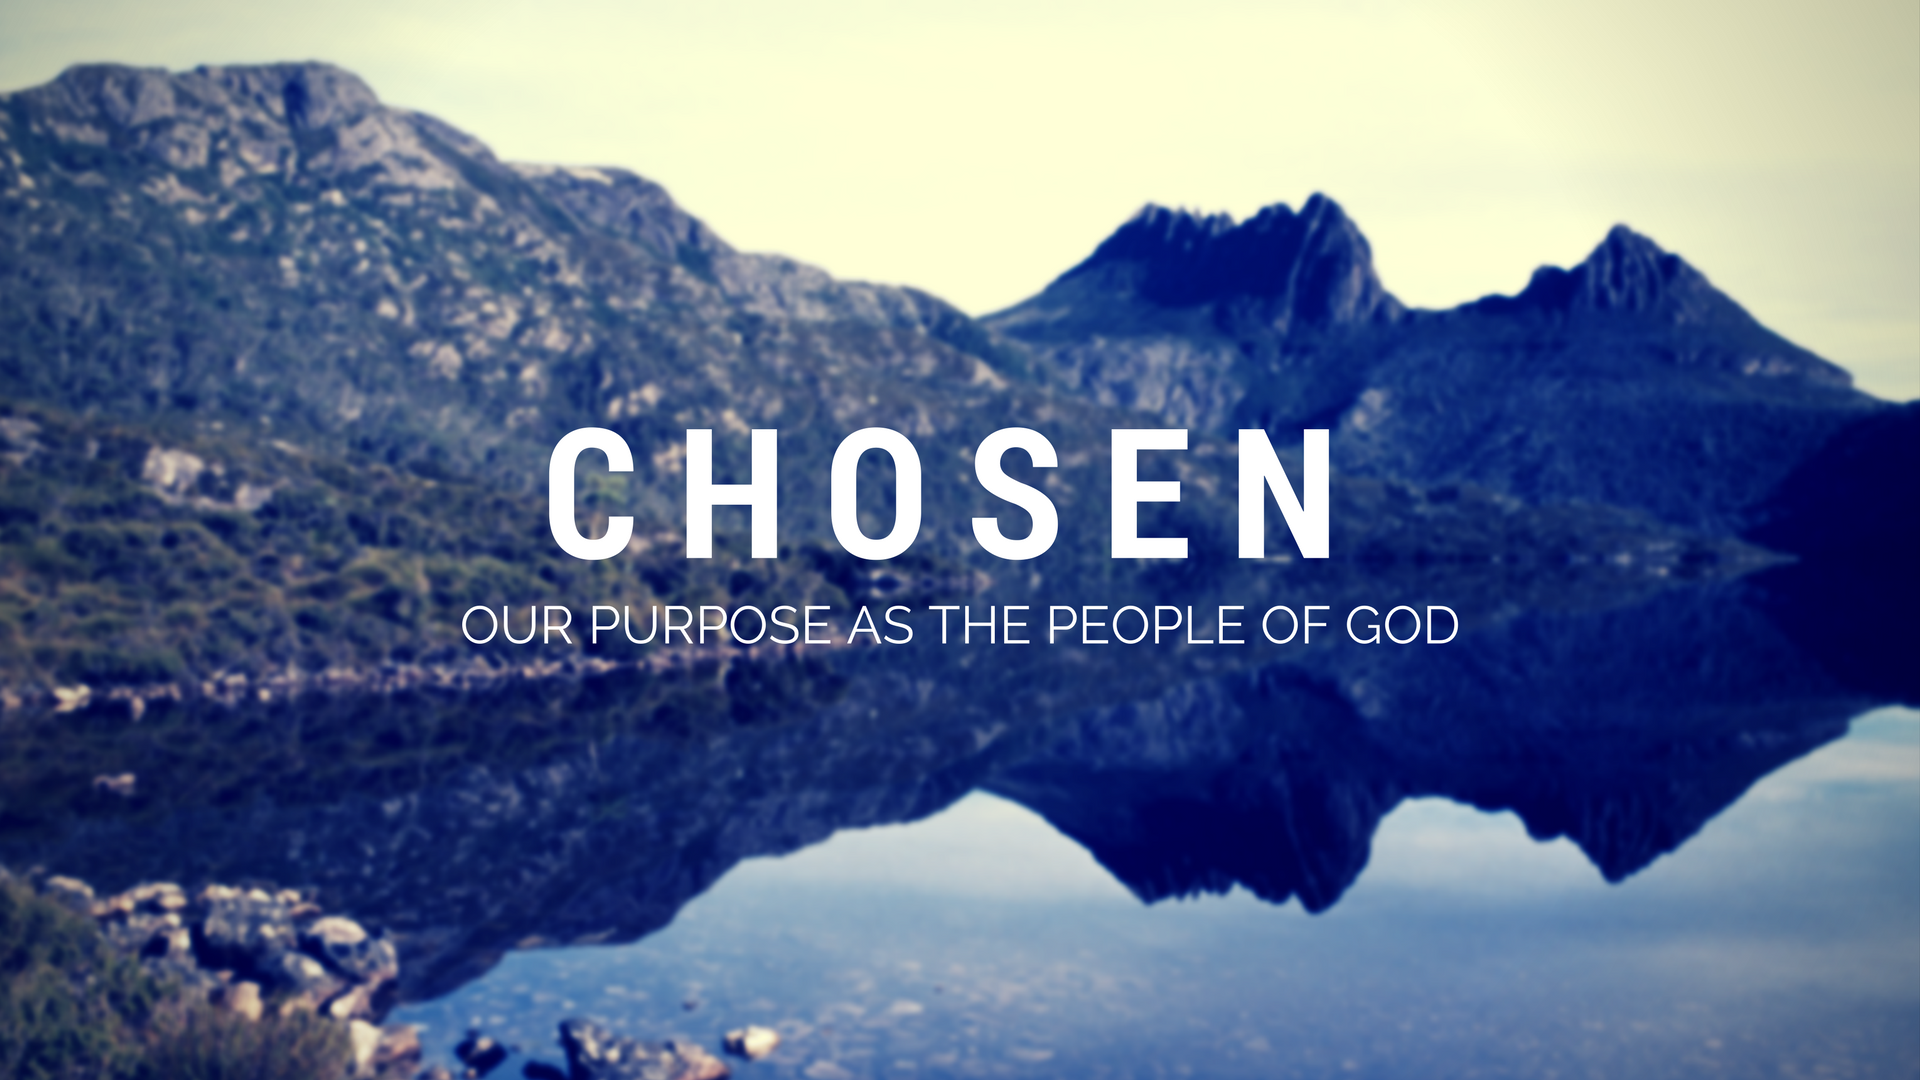 Chosen: To Witness